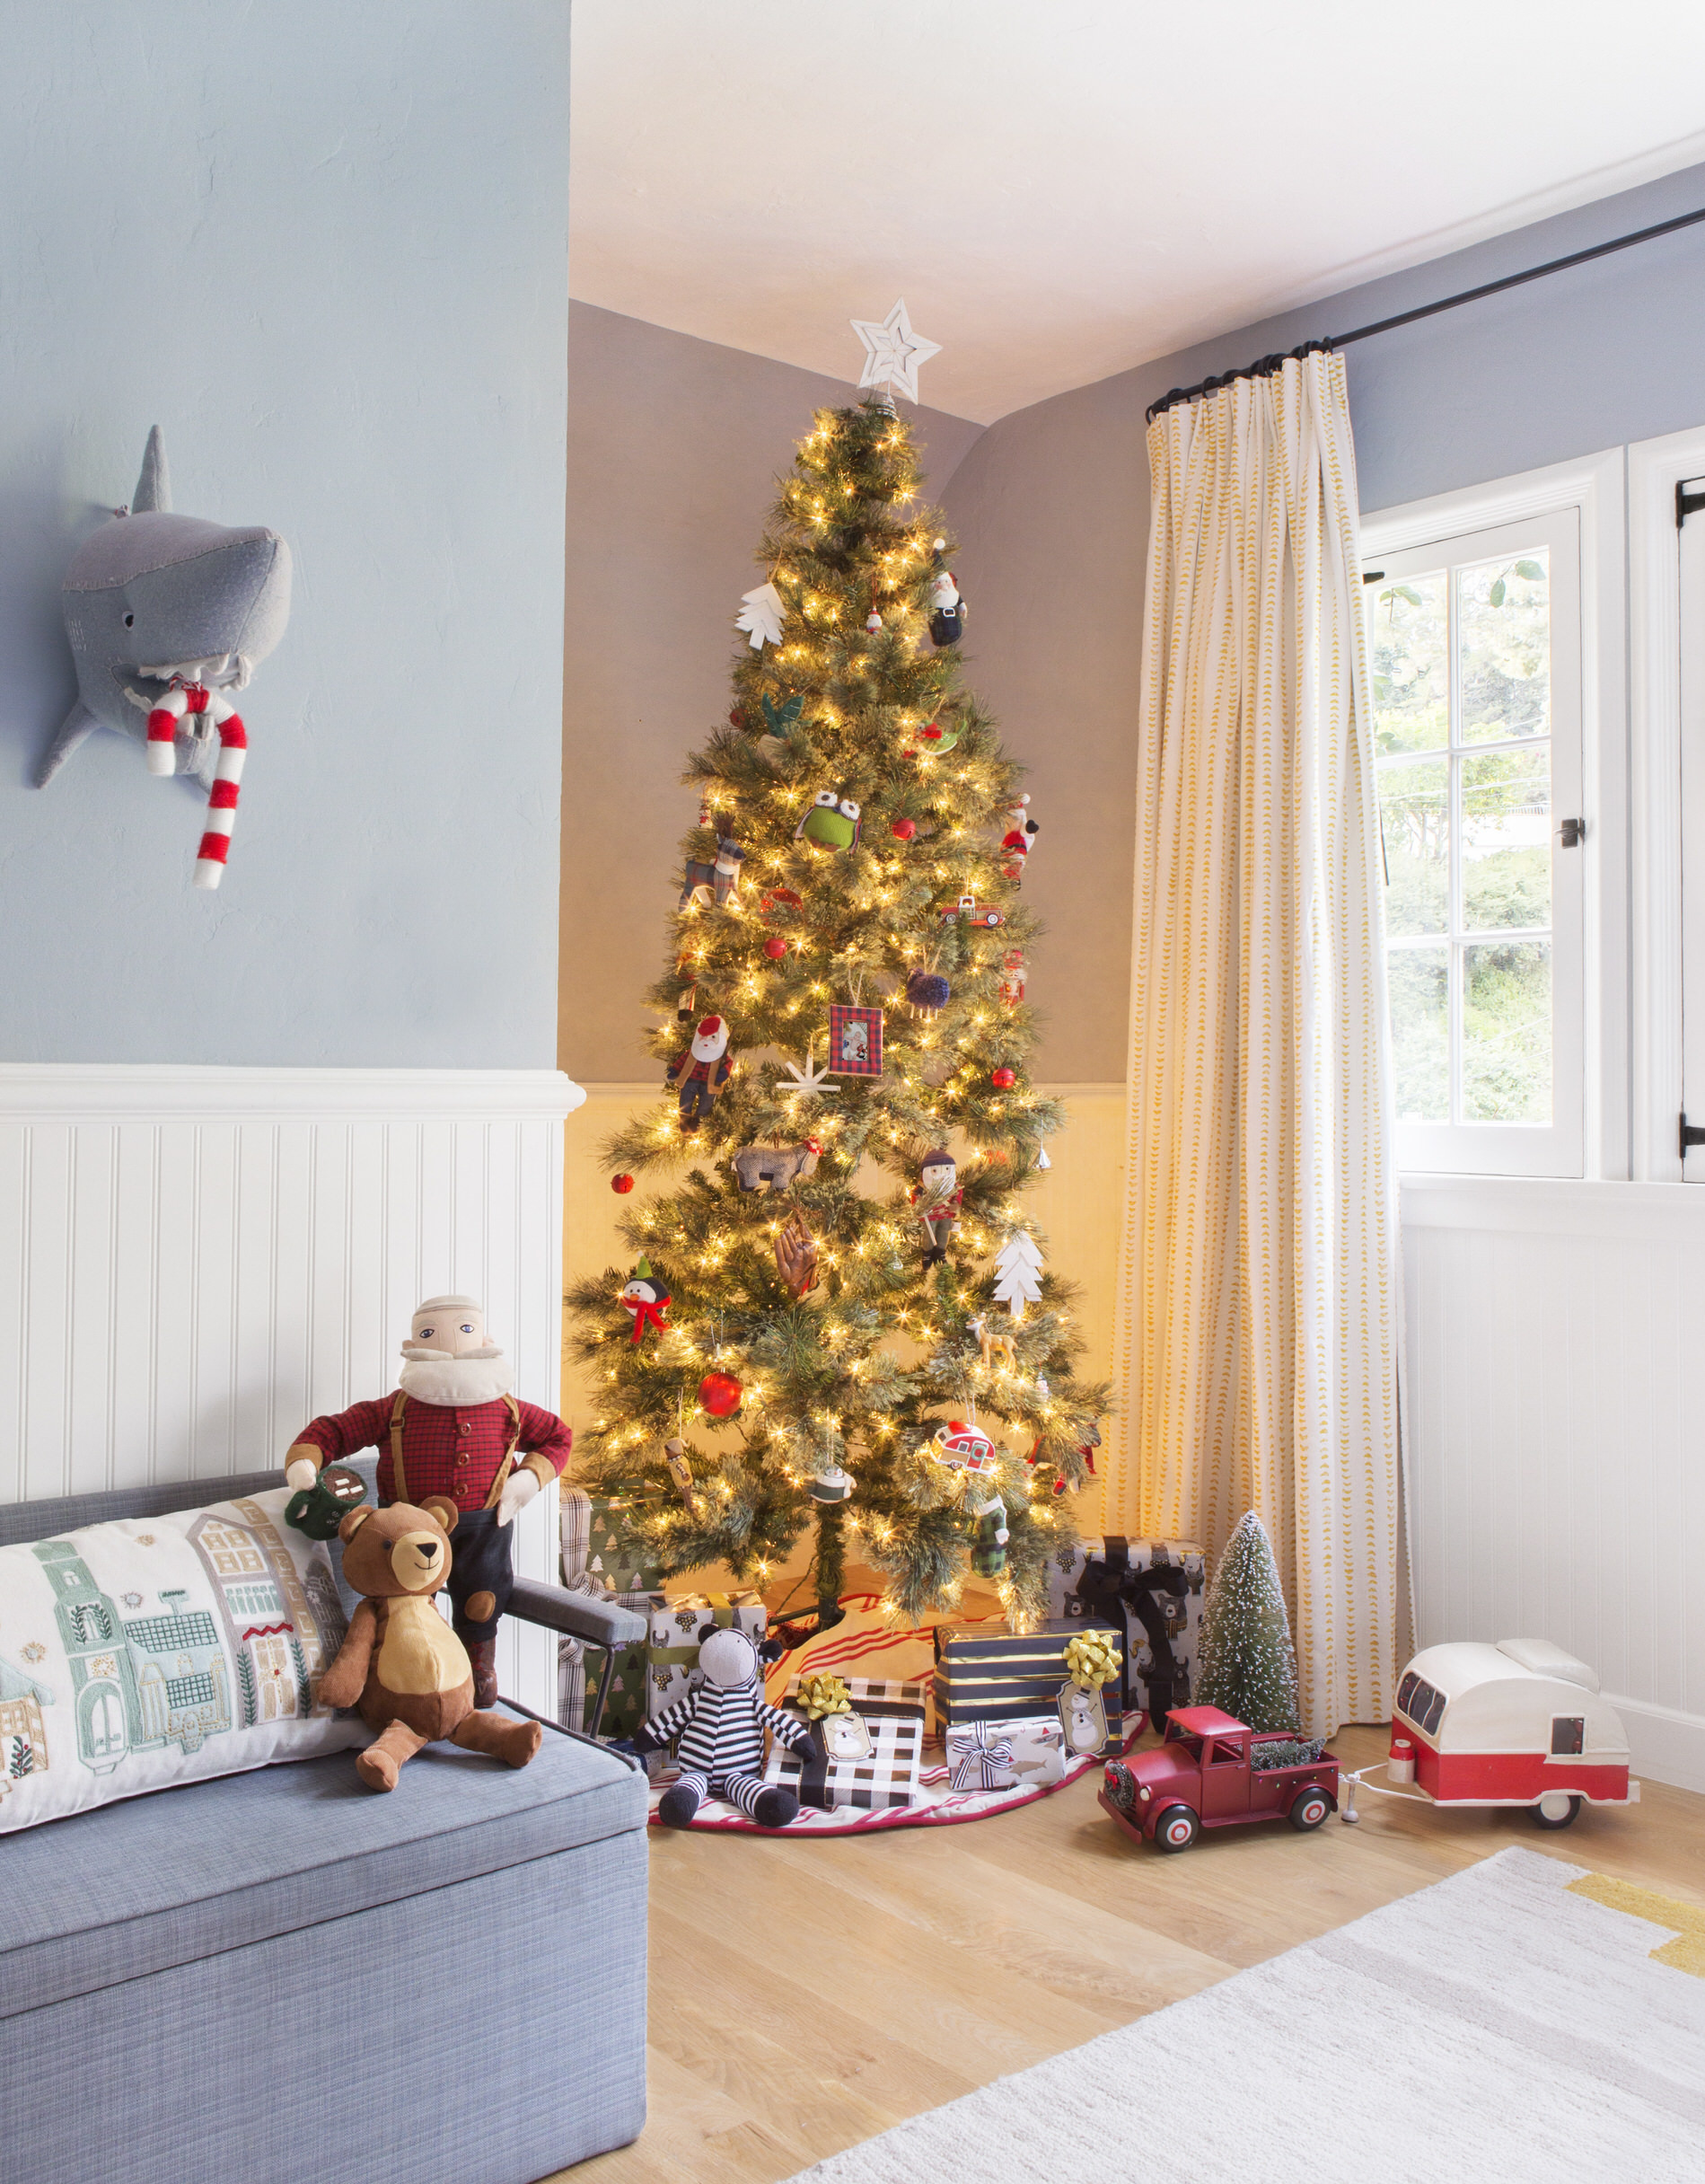 Our Favorite Trends for Decorating the Christmas Tree This Year